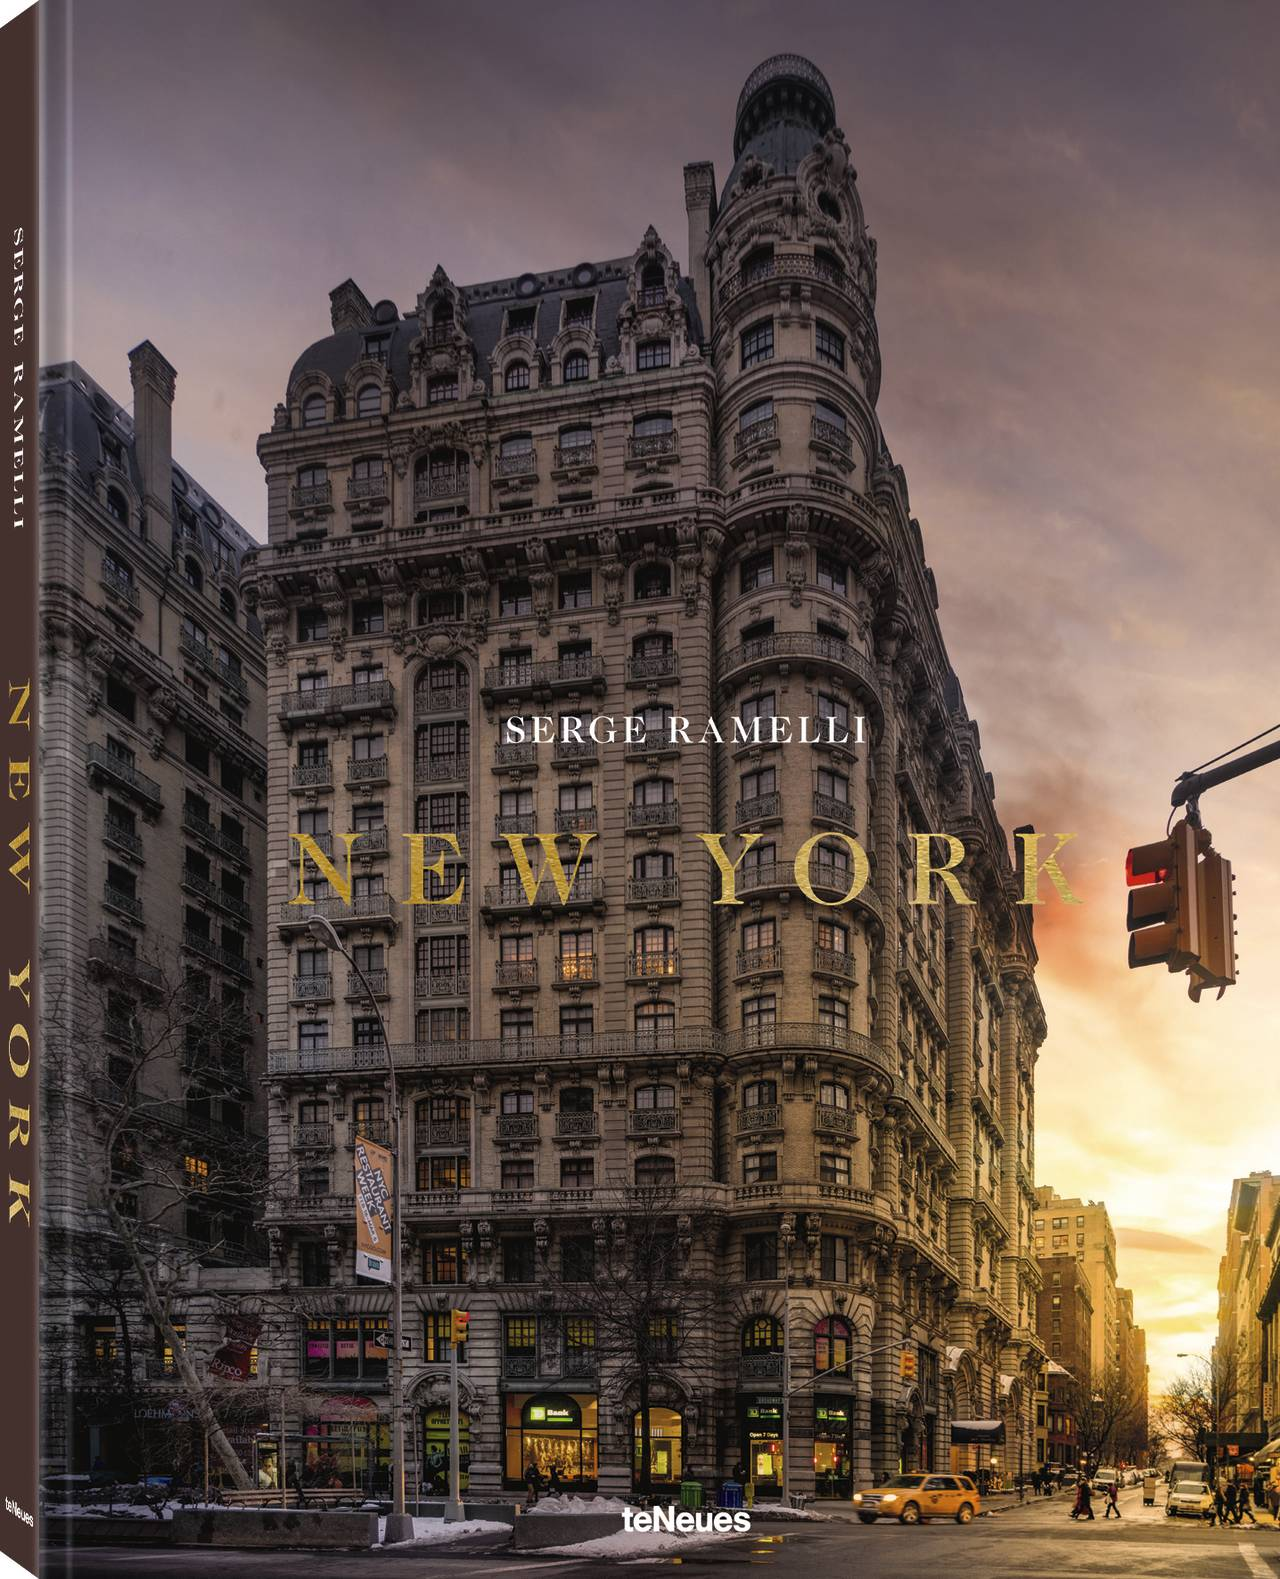 © New York by Serge Ramelli, published by teNeues, www.teneues.com, The Upper West Side at sunset, Photo © 2019 Serge Ramelli